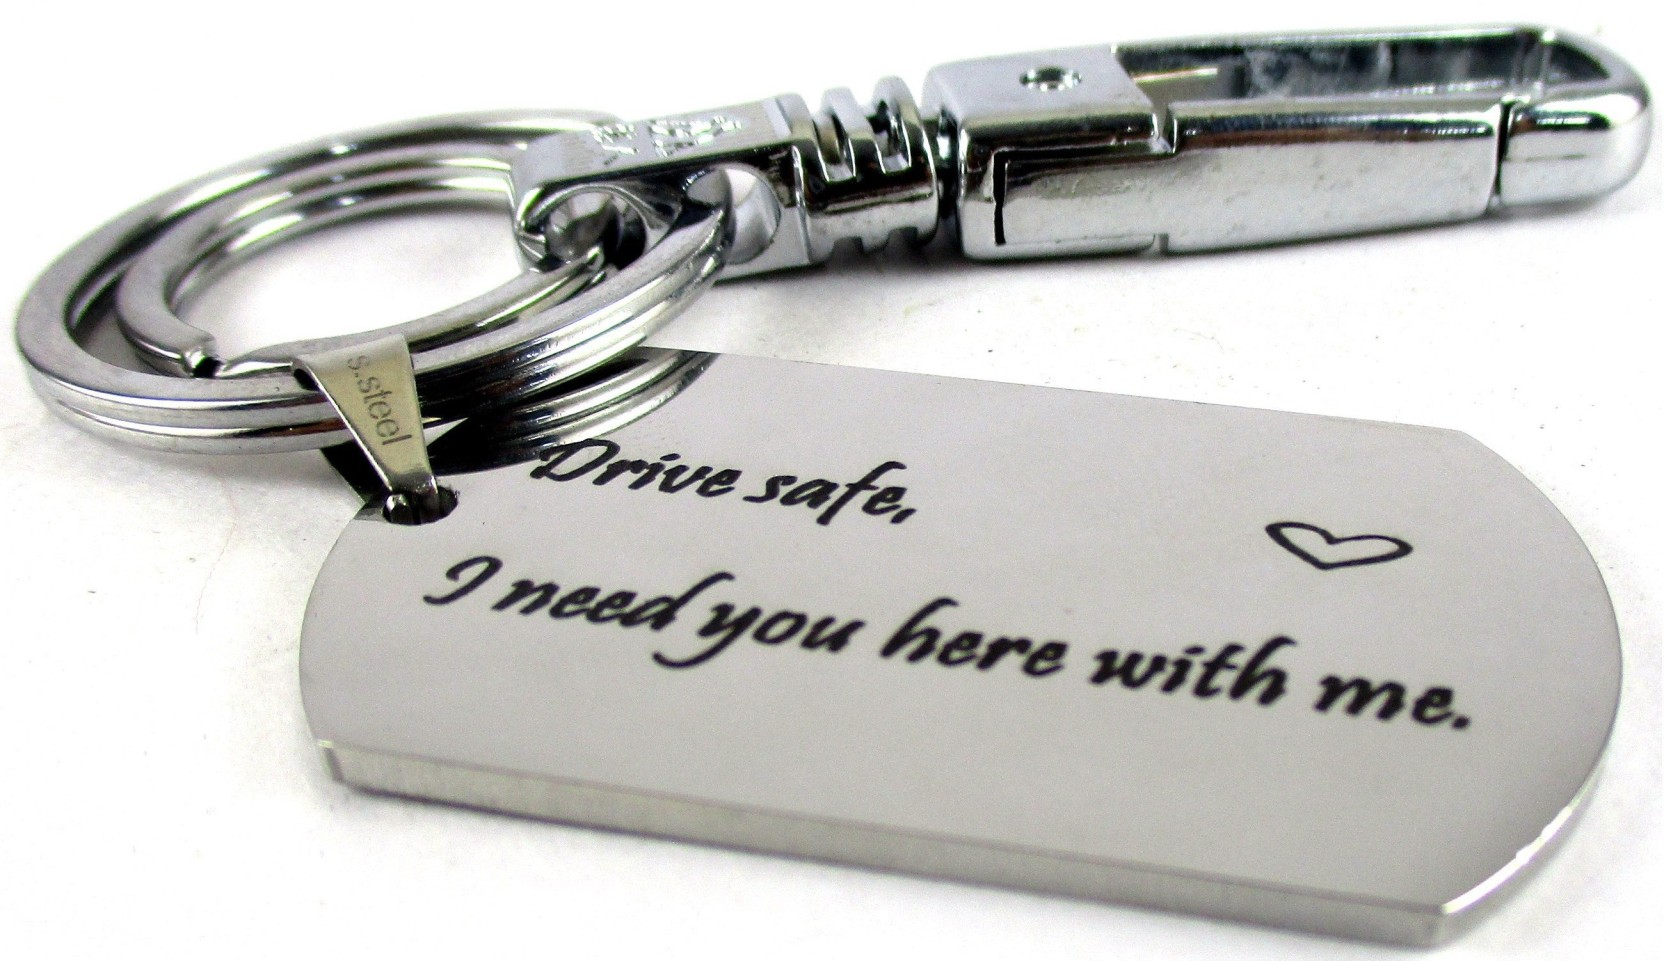 Streetsoul Drive Safe Message Engraved Keychain Stainless Steel ... 69f61aecd